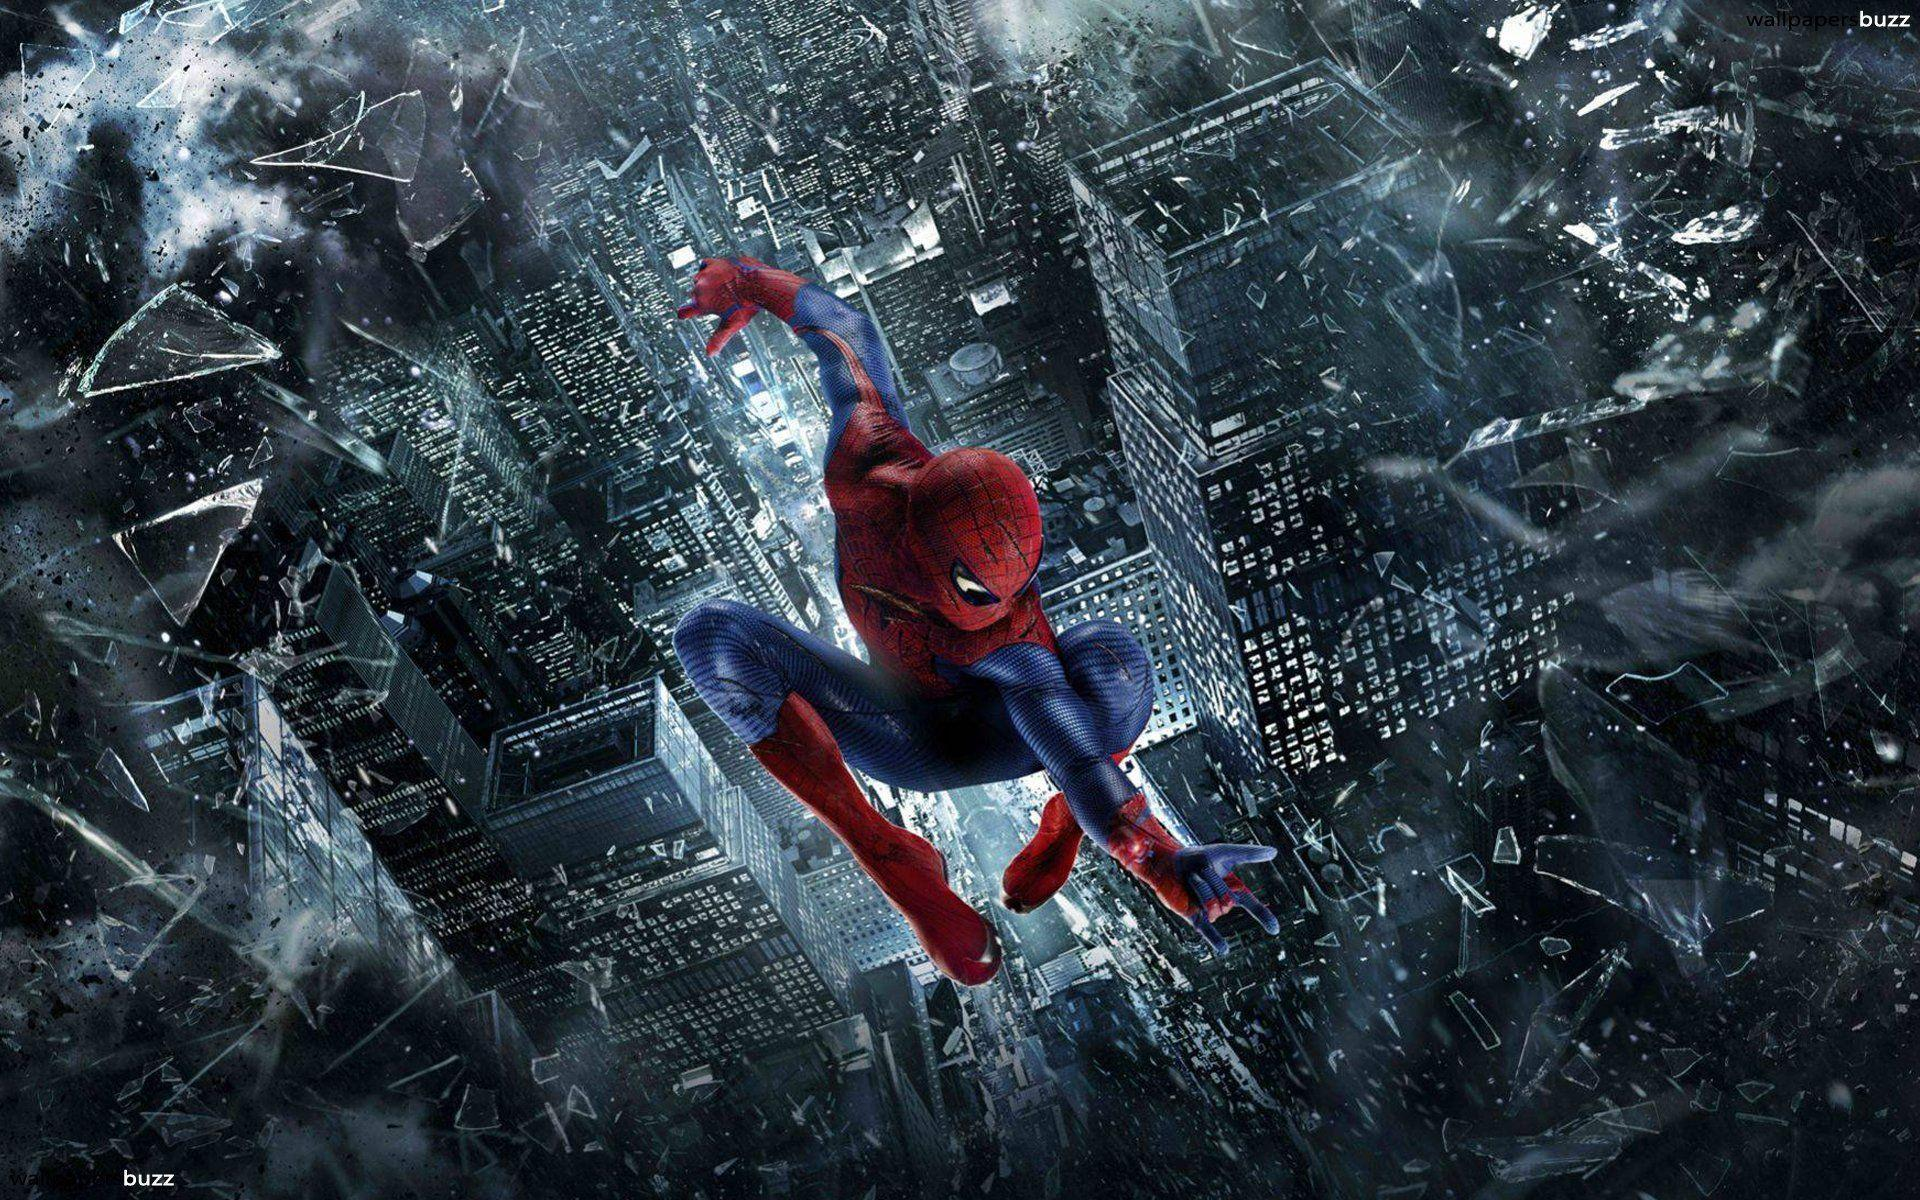 Hd Spider Man Wallpaper, Hollywood, Movie Charactrer, Marvel